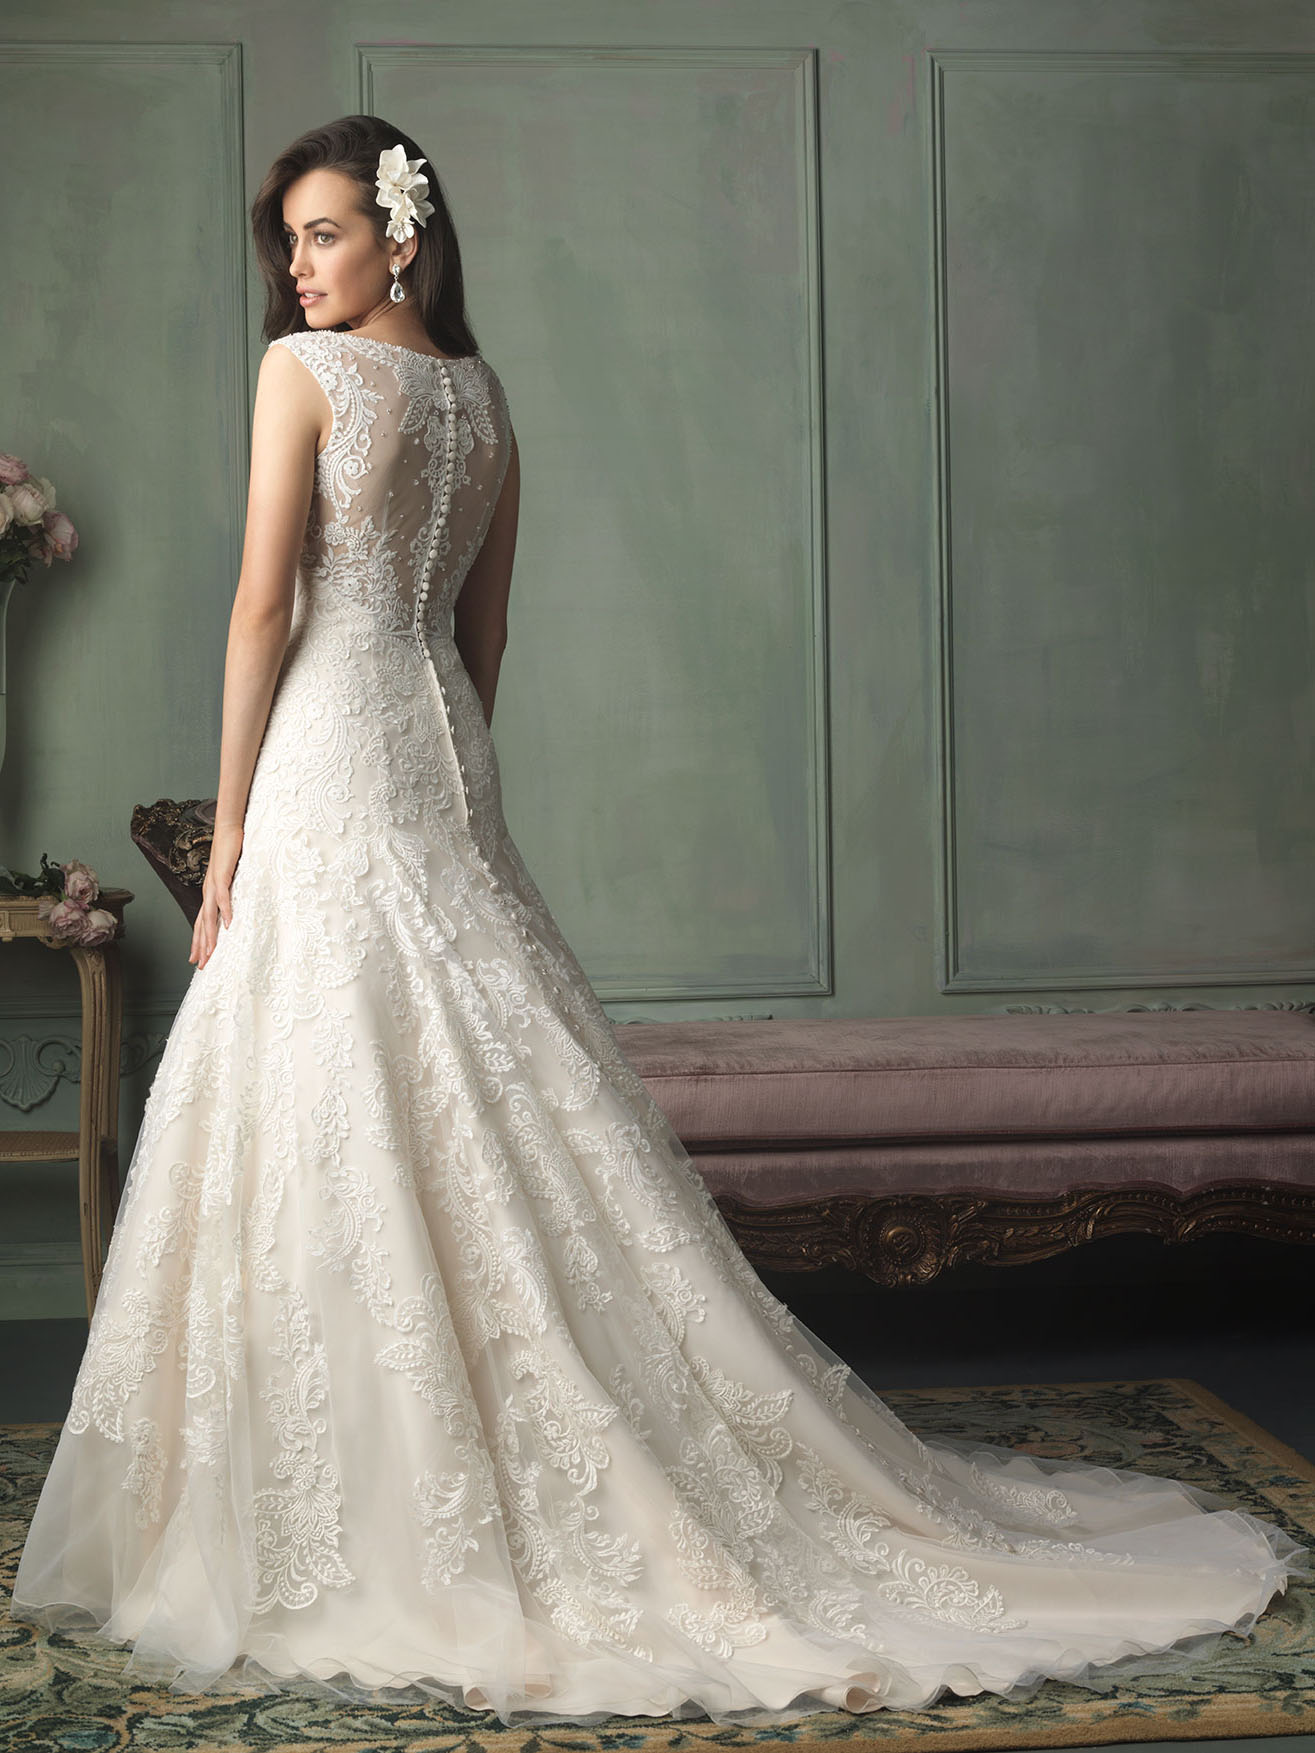 Lilly Rose Wedding Dress 2